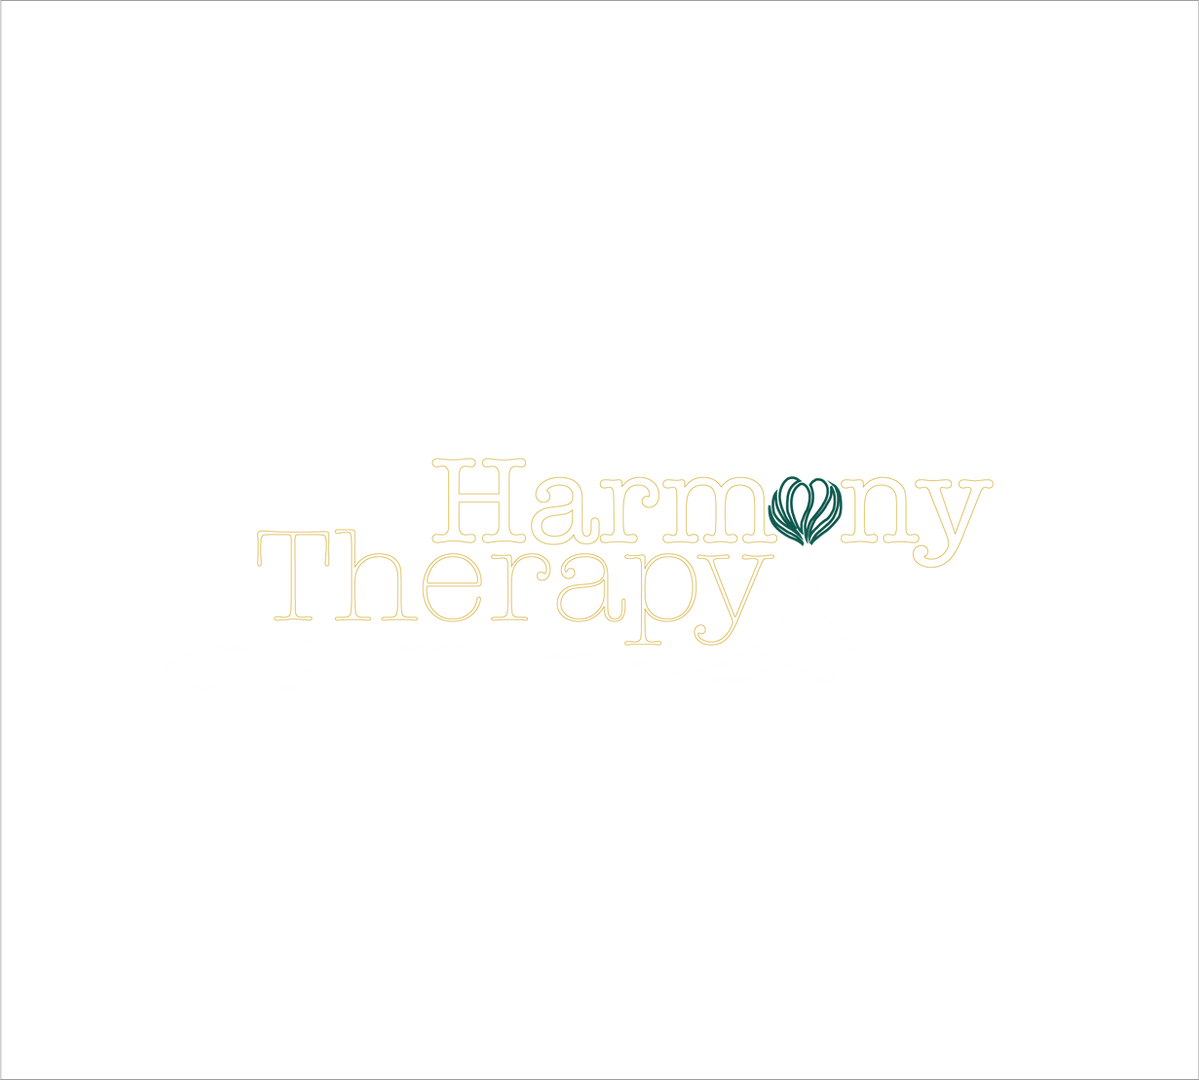 LOGO HARMONY THERAPY.png